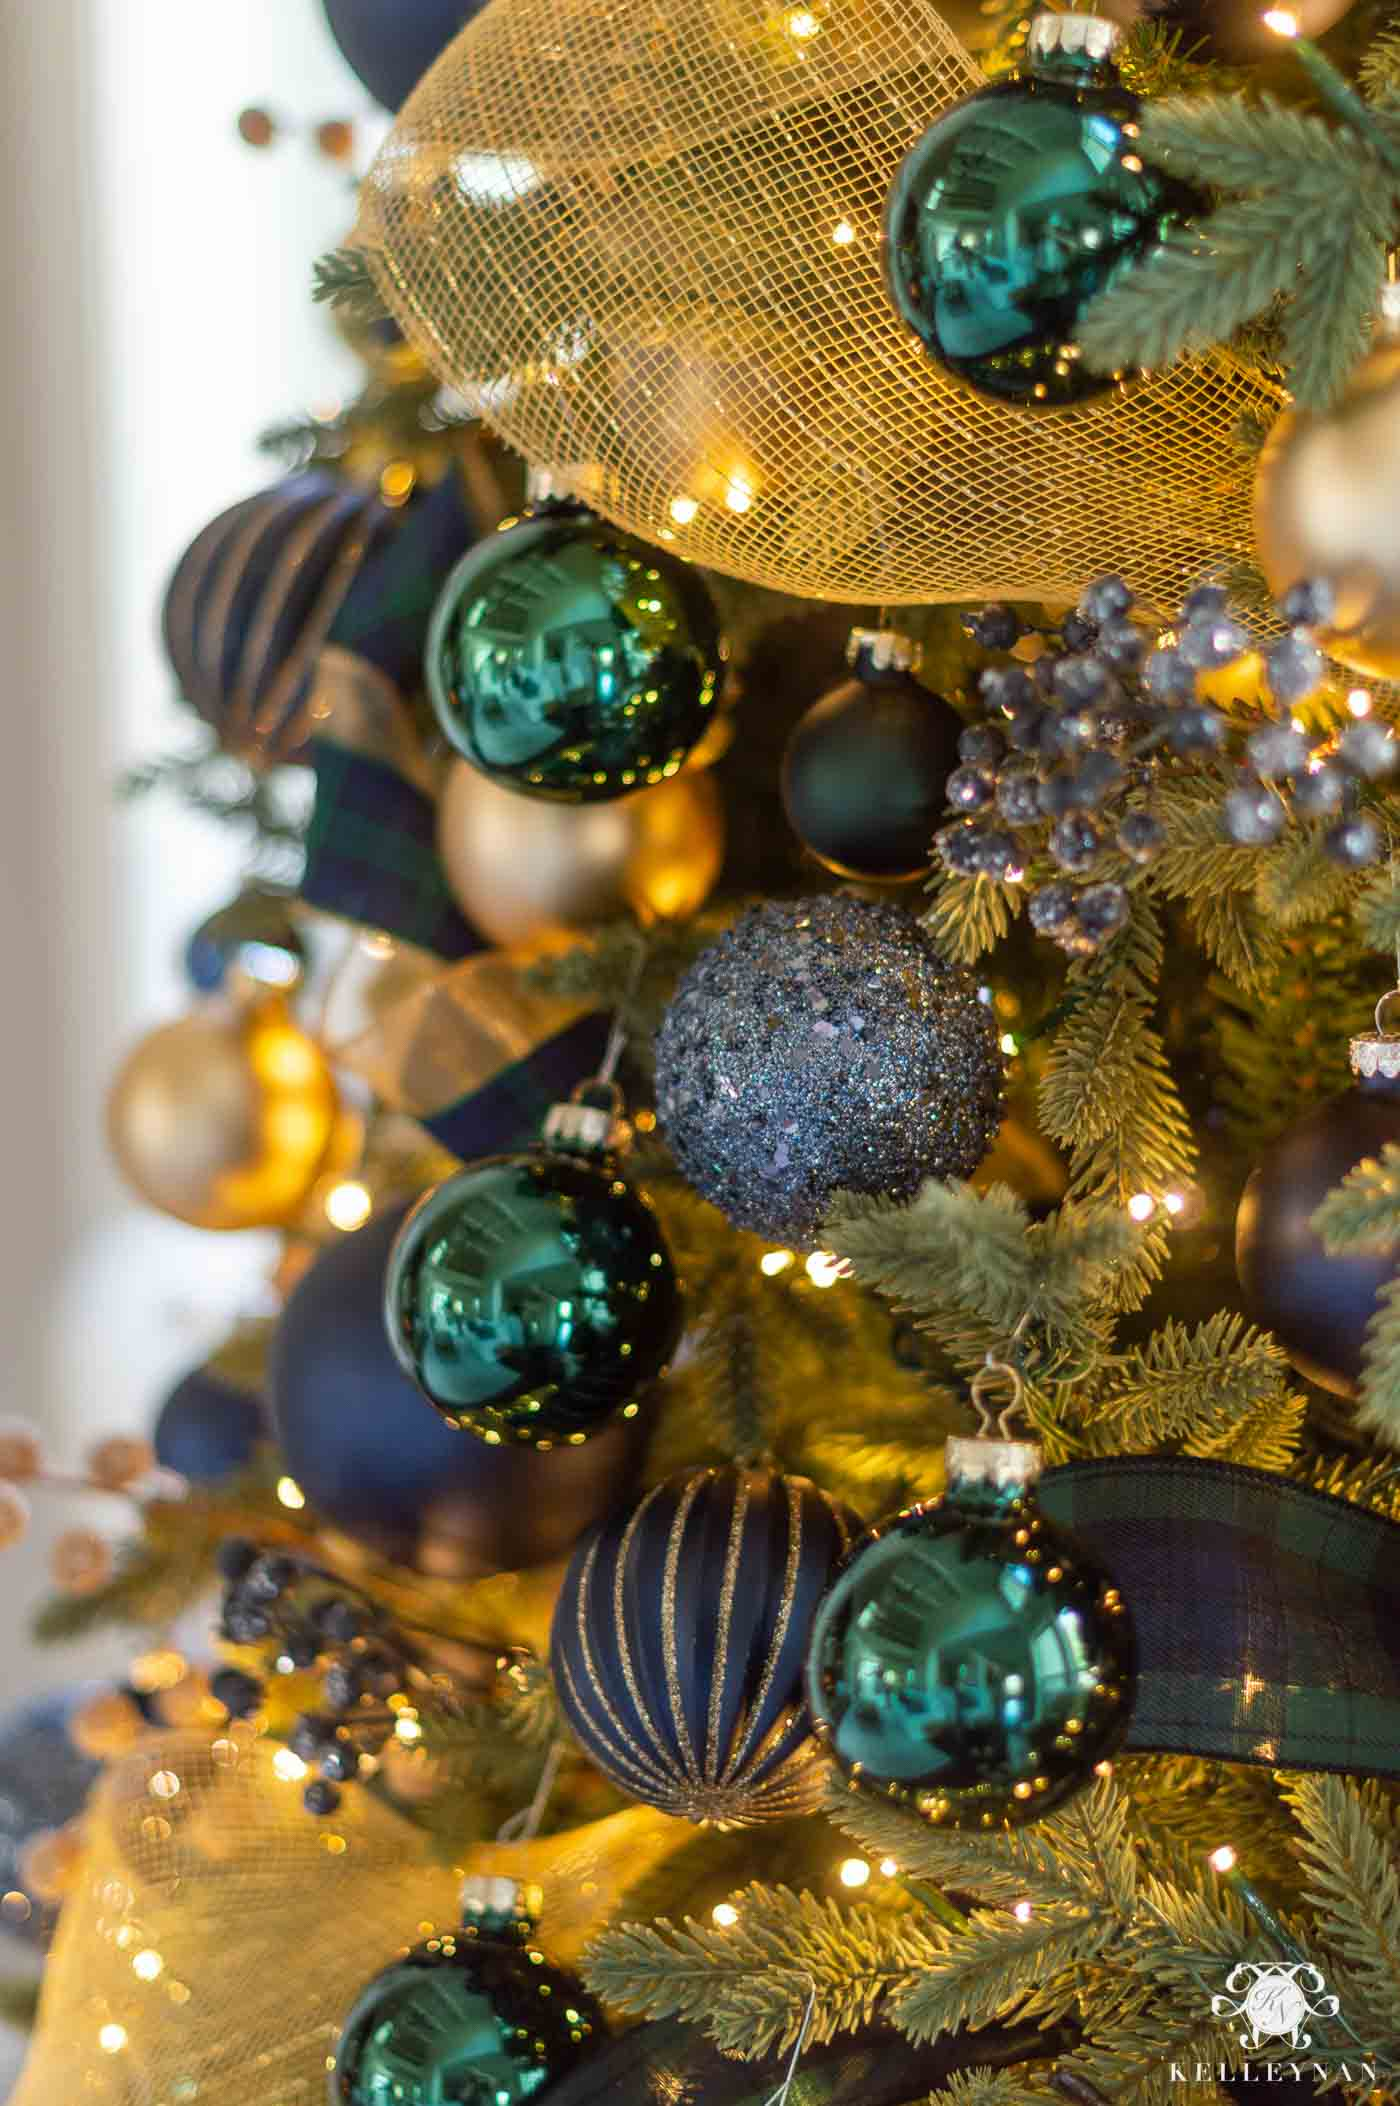 Christmas Tree Decor with Ornament Balls and Mesh Ribbon